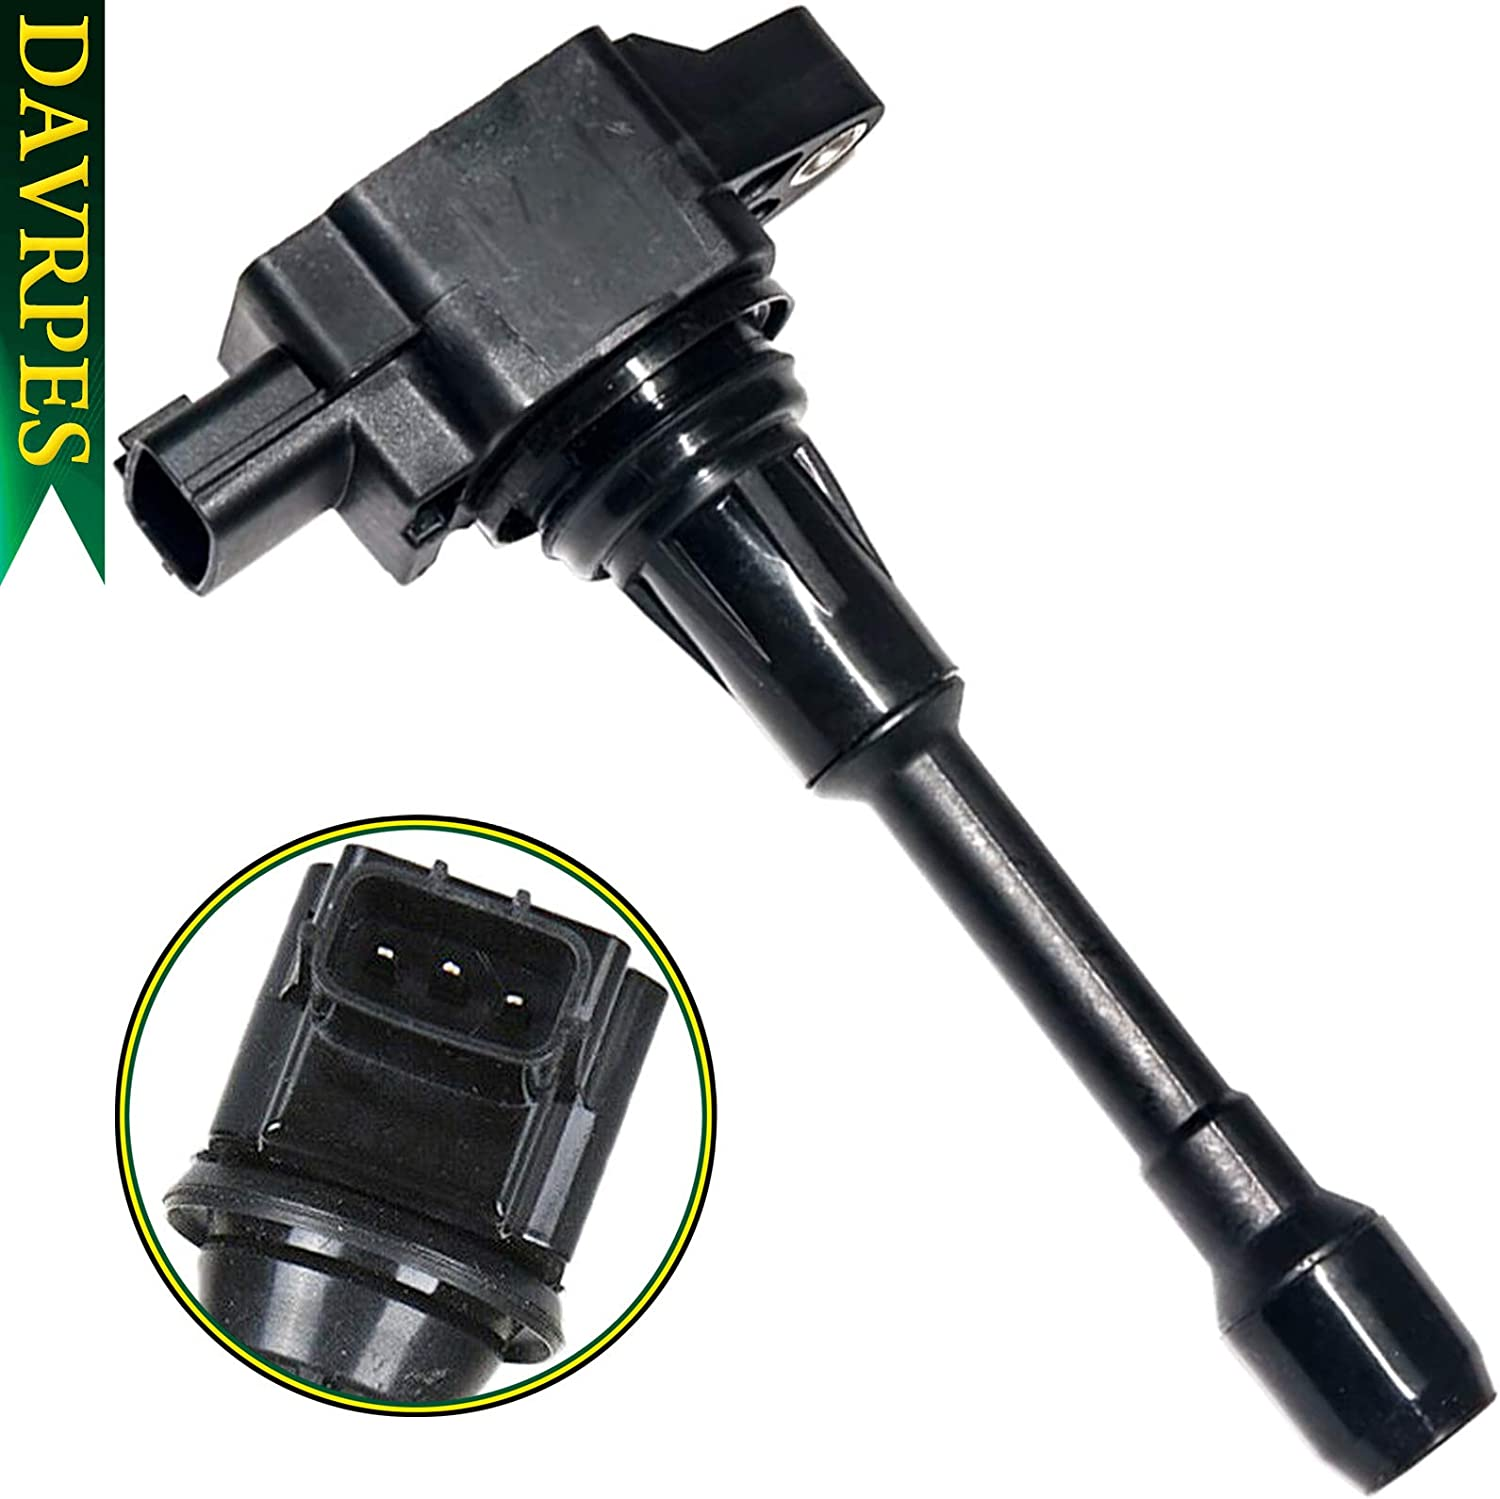 DAVRPES UF549 Ignition Coils Pack Cheap mail order shopping For 1 year warranty Cube S Rogue Sentra Altima